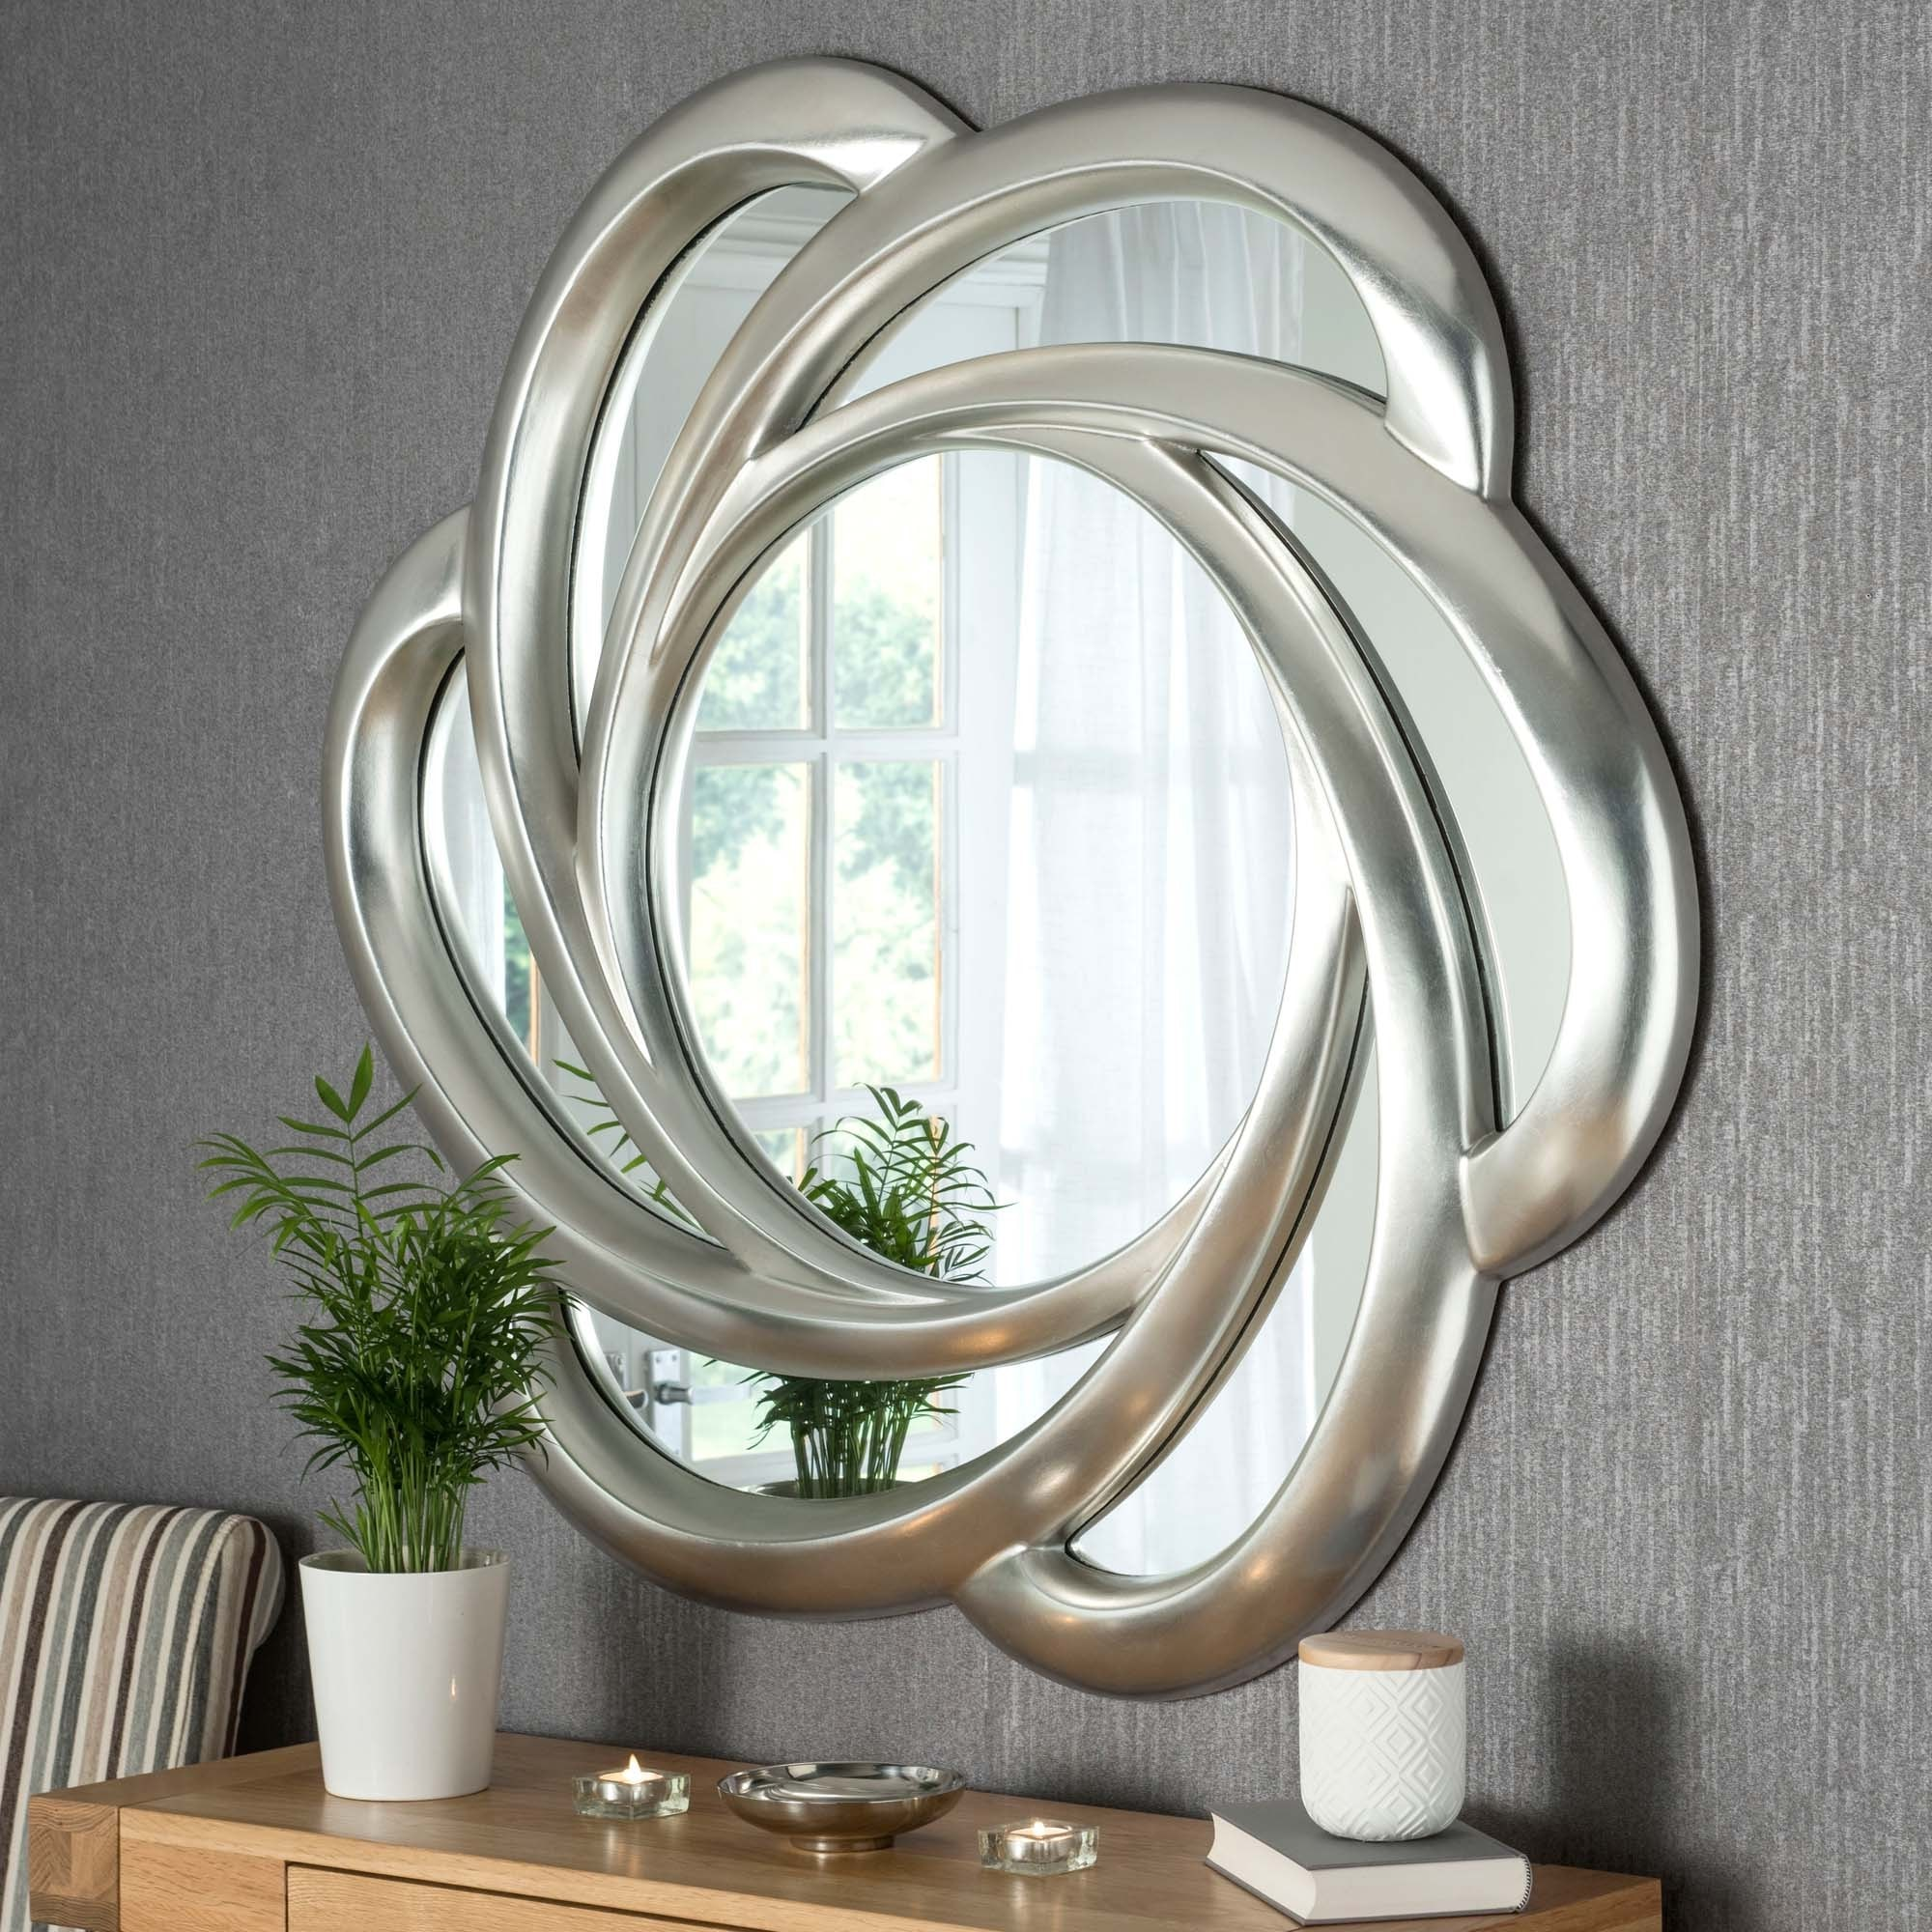 Contemporary Silver Swirl Wall Mirror | Wall Mirrors on Wall Mirrors id=81689